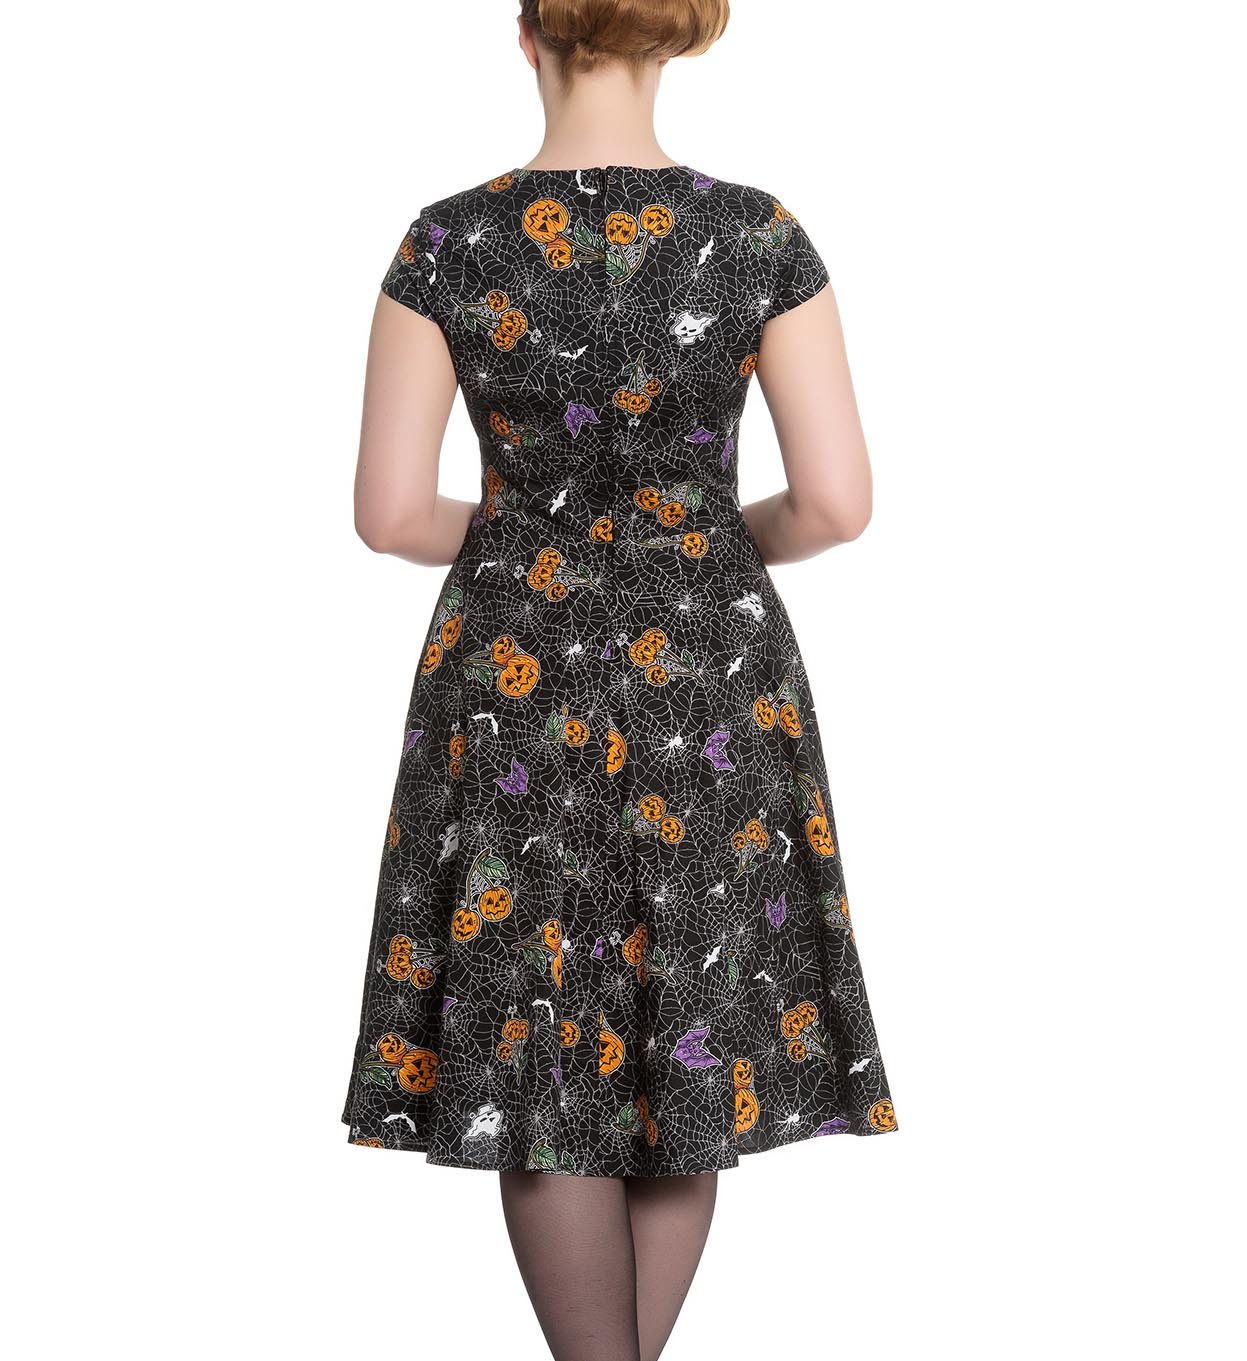 Hell-Bunny-Black-Pinup-50s-Goth-Webs-Dress-HARLOW-Halloween-All-Sizes thumbnail 21